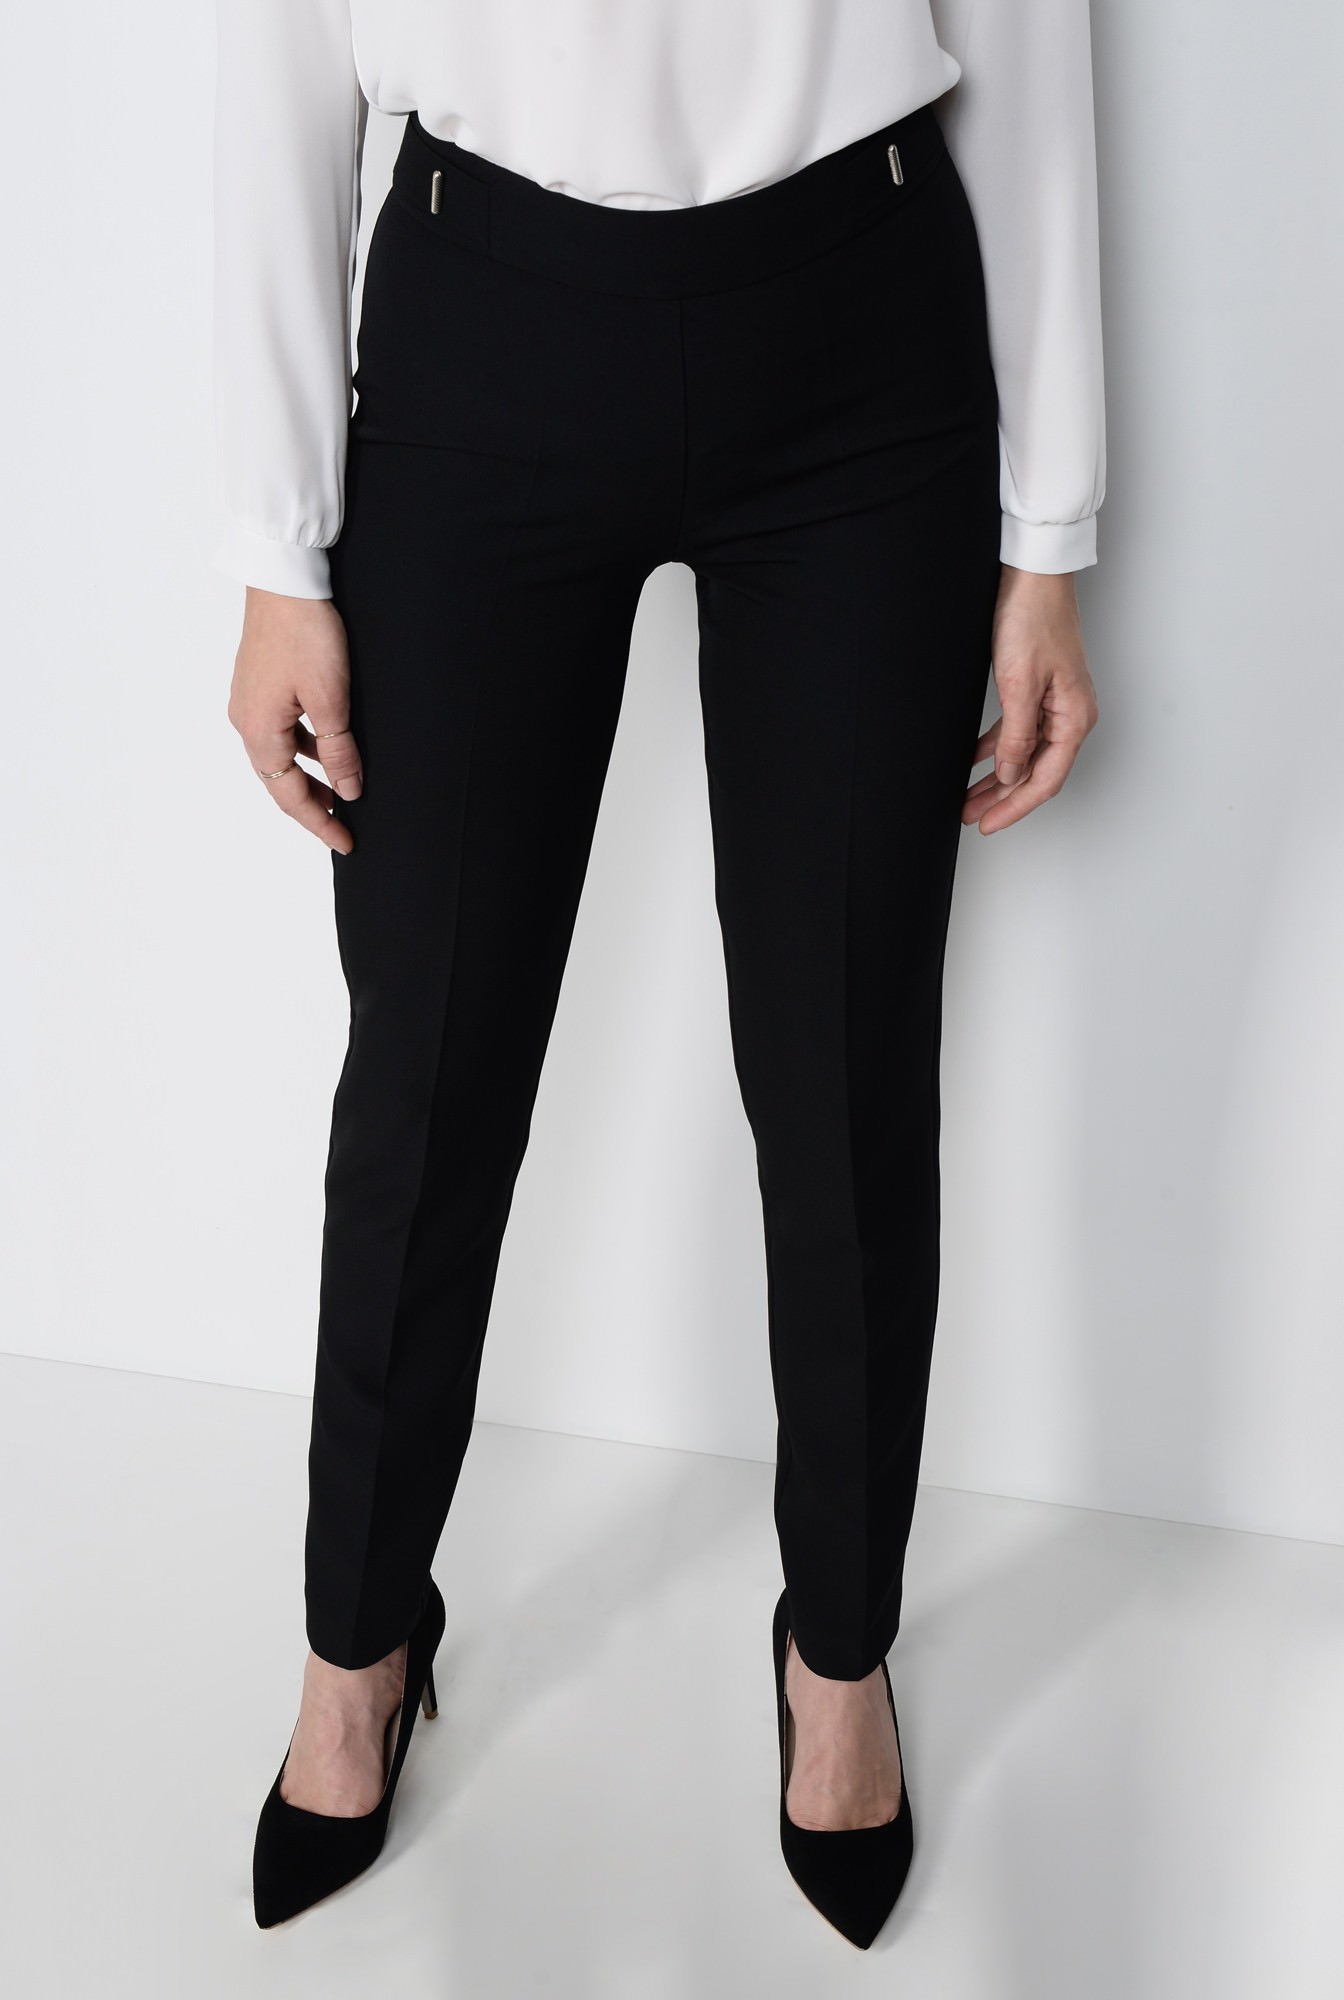 2 - PANTALON OFFICE CONIC PT 120-NEGRU